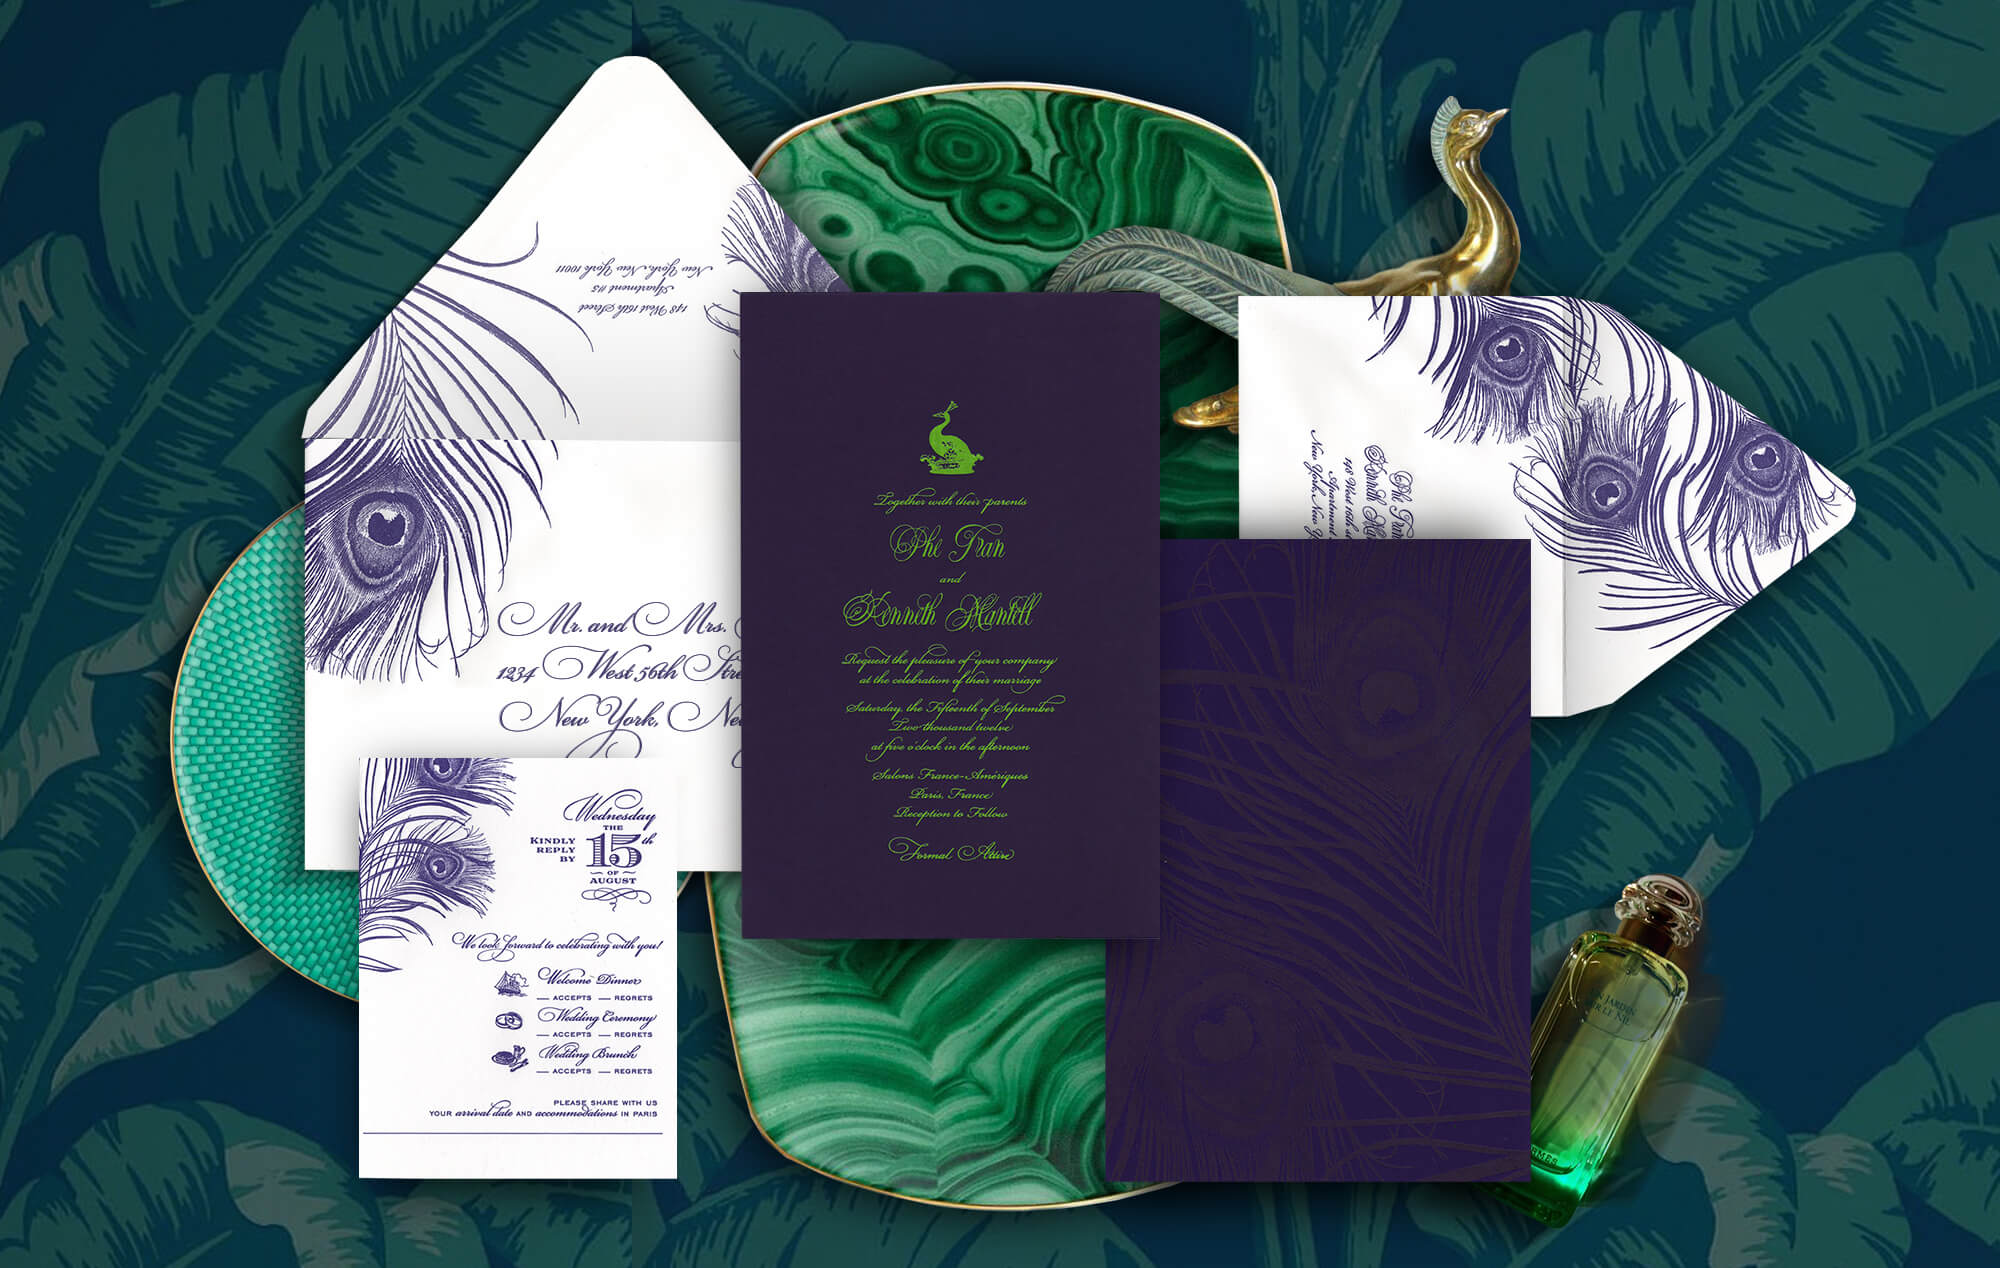 Peacock feather contemporary meets classic wedding invitation